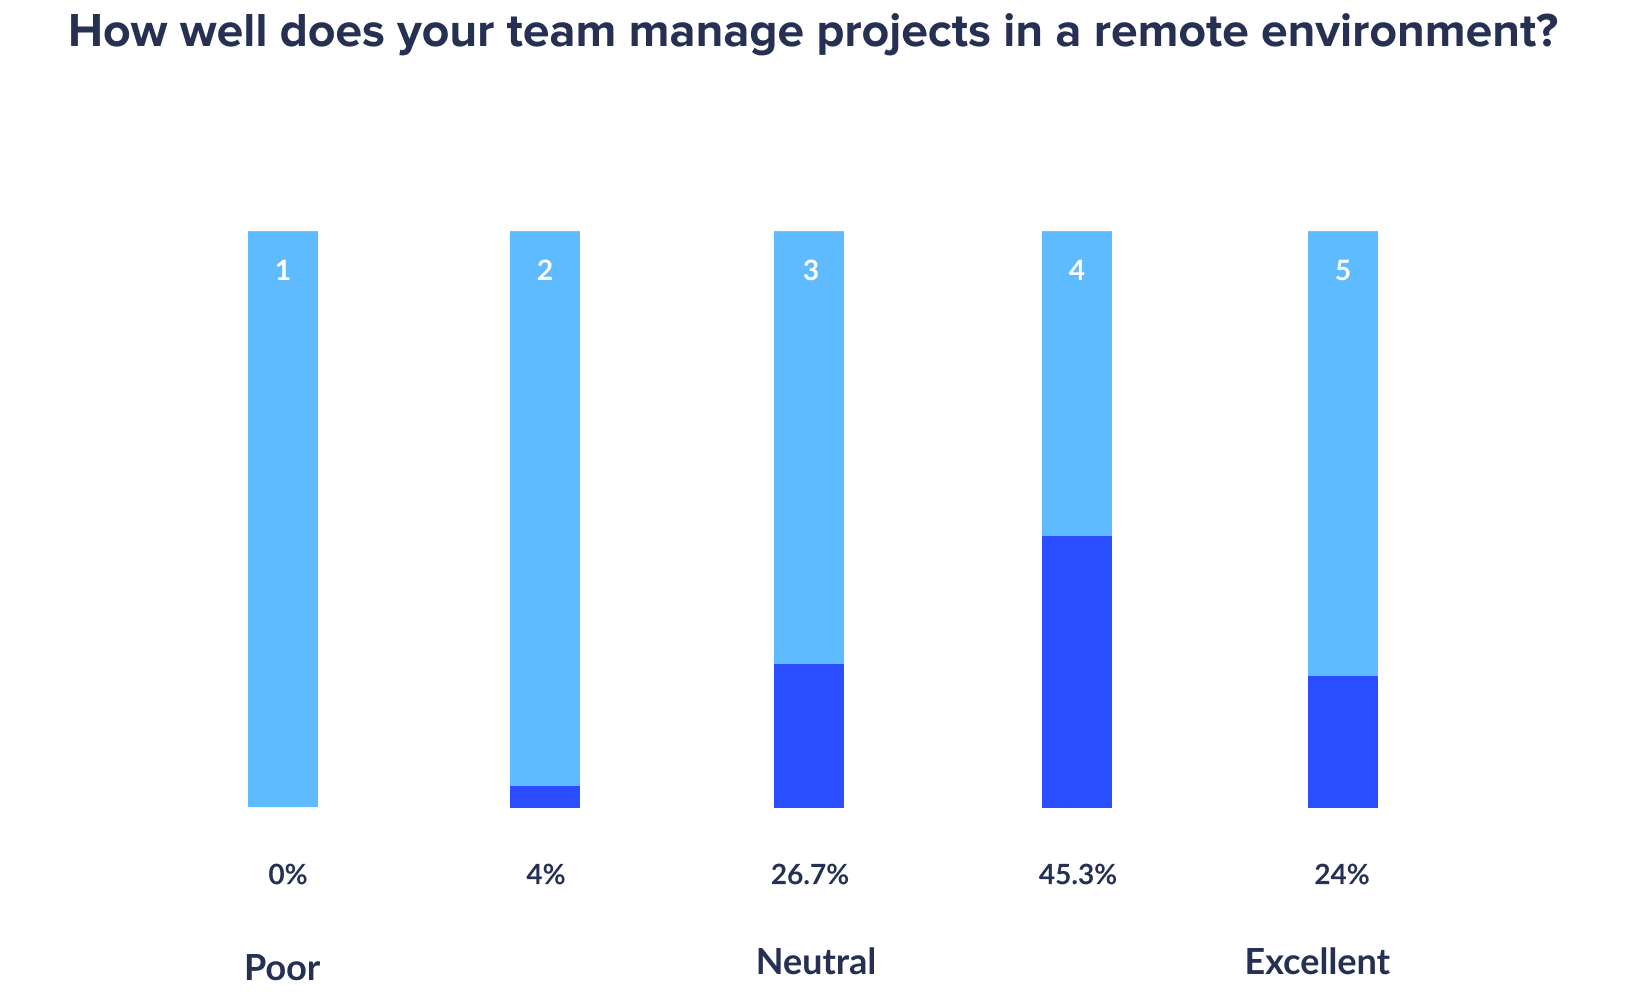 how well teams manage projects remotely